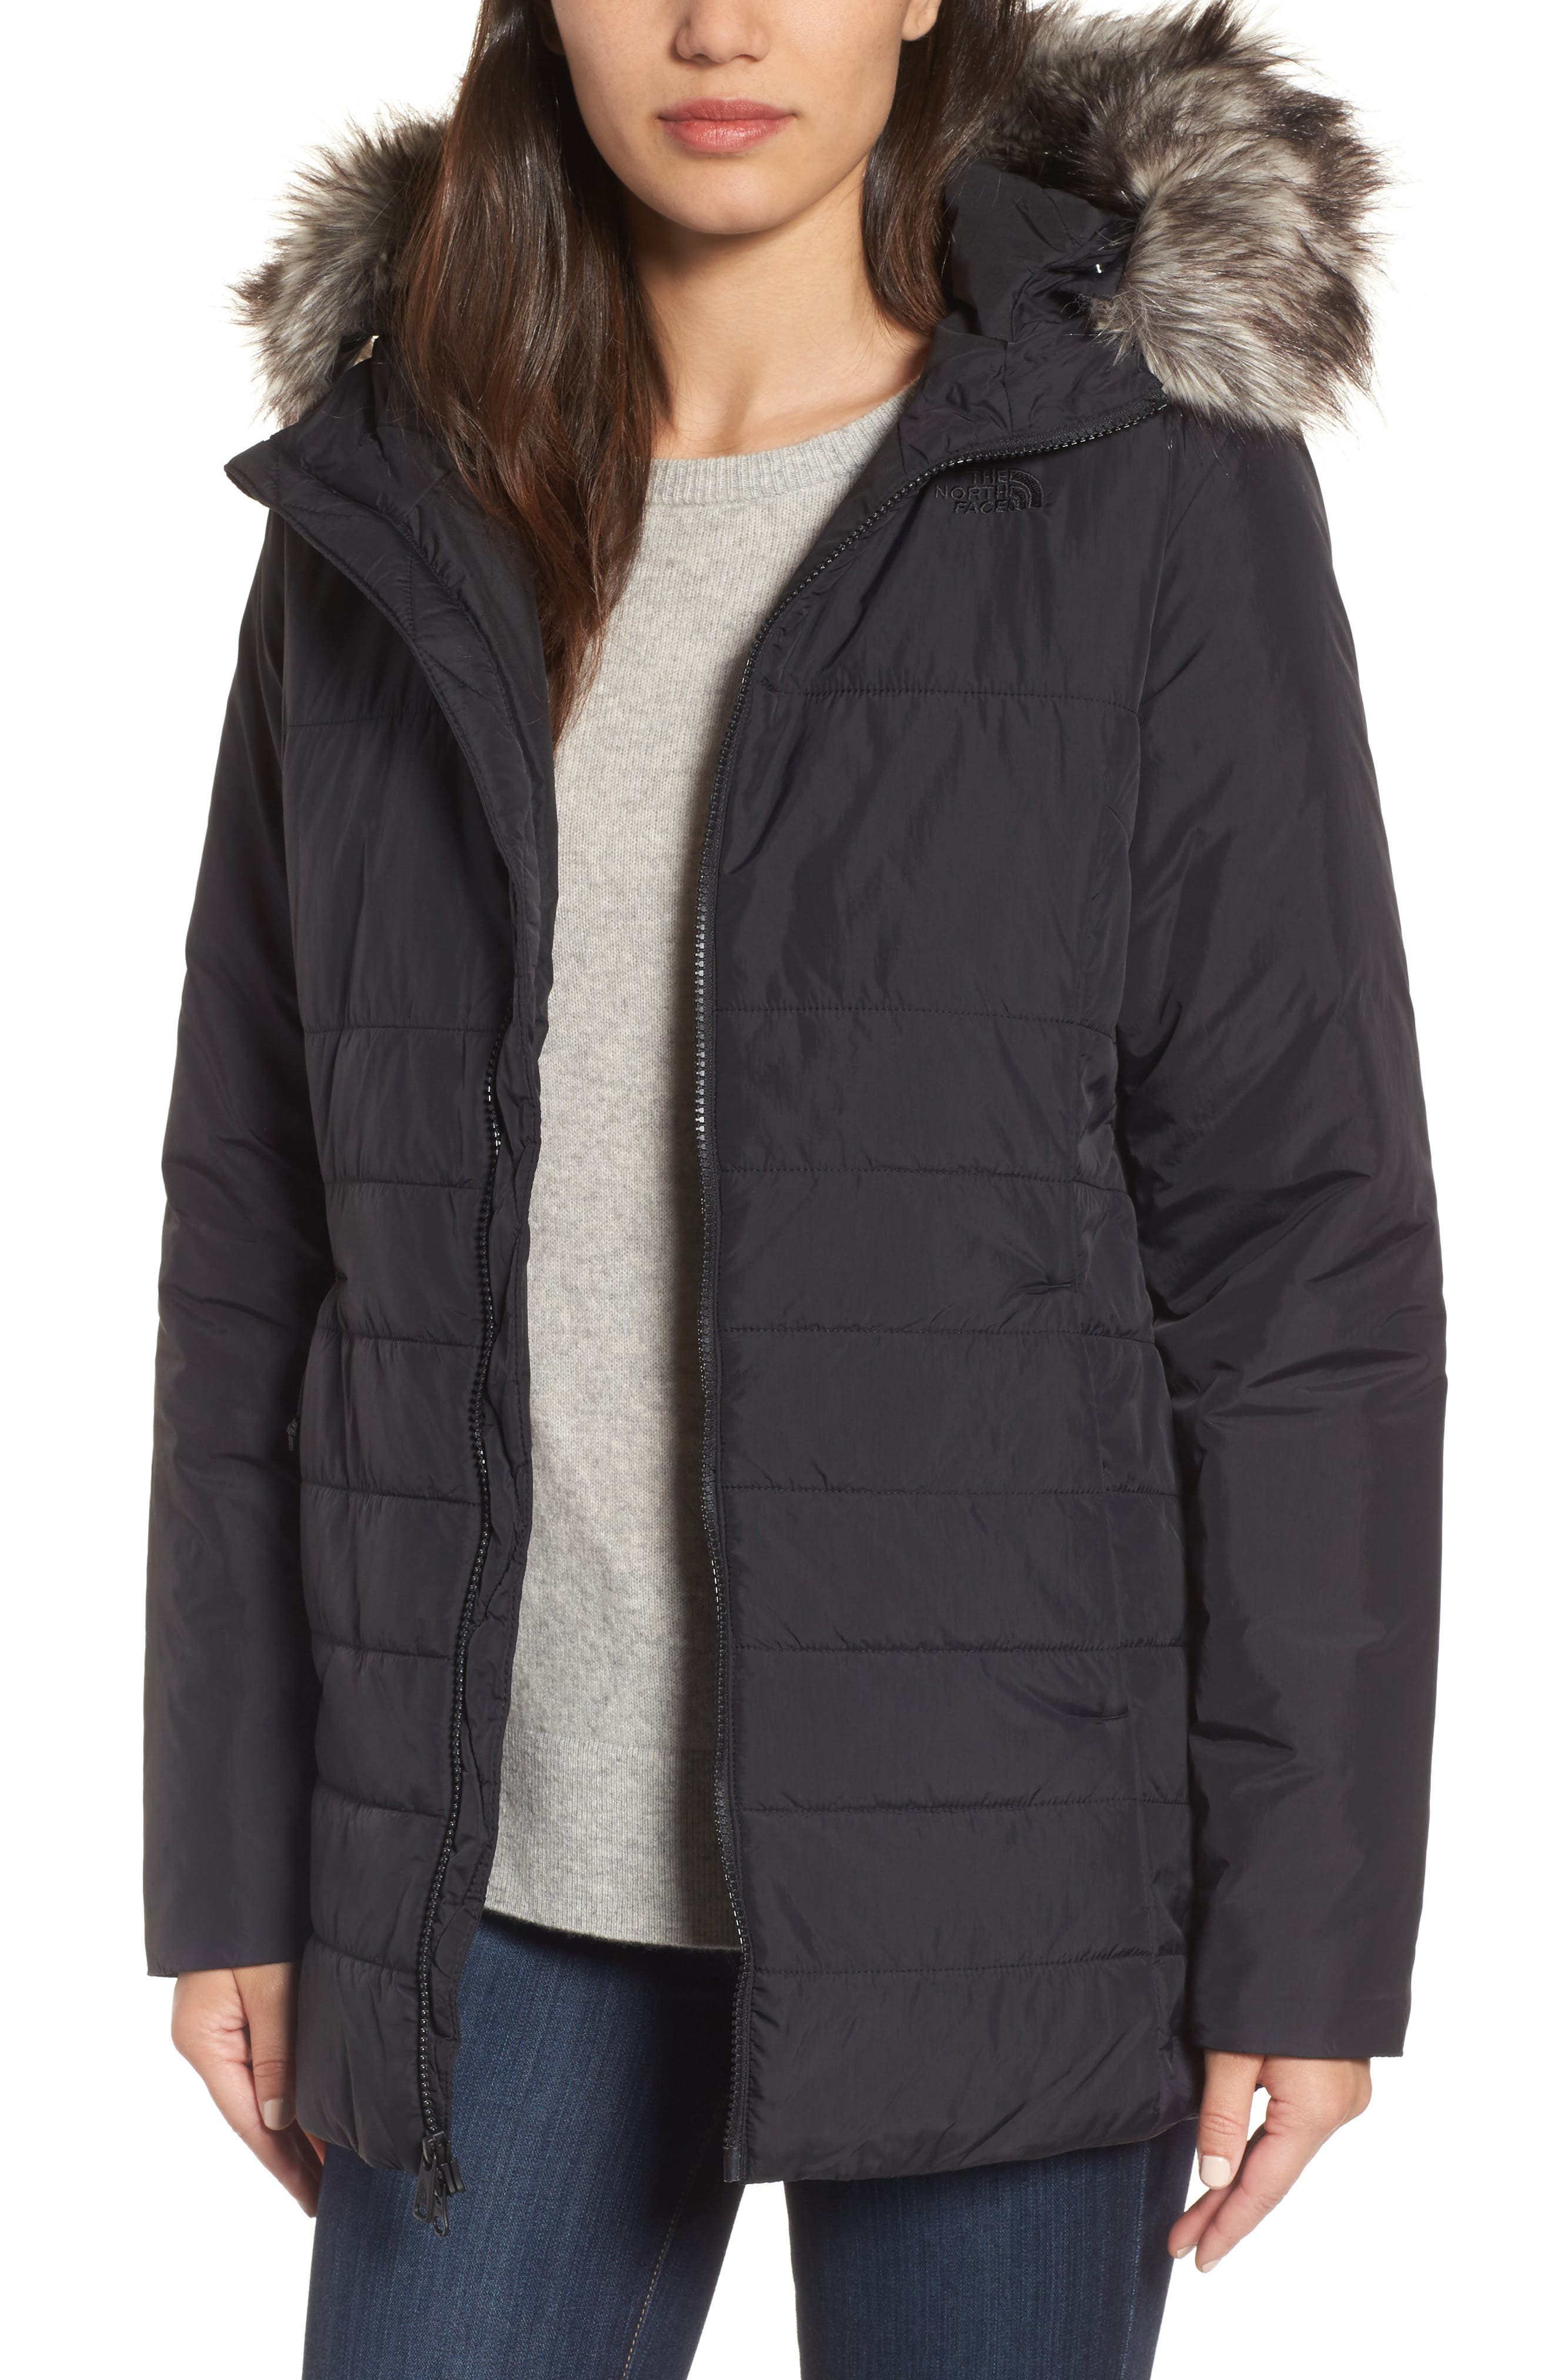 Main Image - The North Face Harway Heatseeker™ Water-Resistant Jacket with Faux Fur Trim